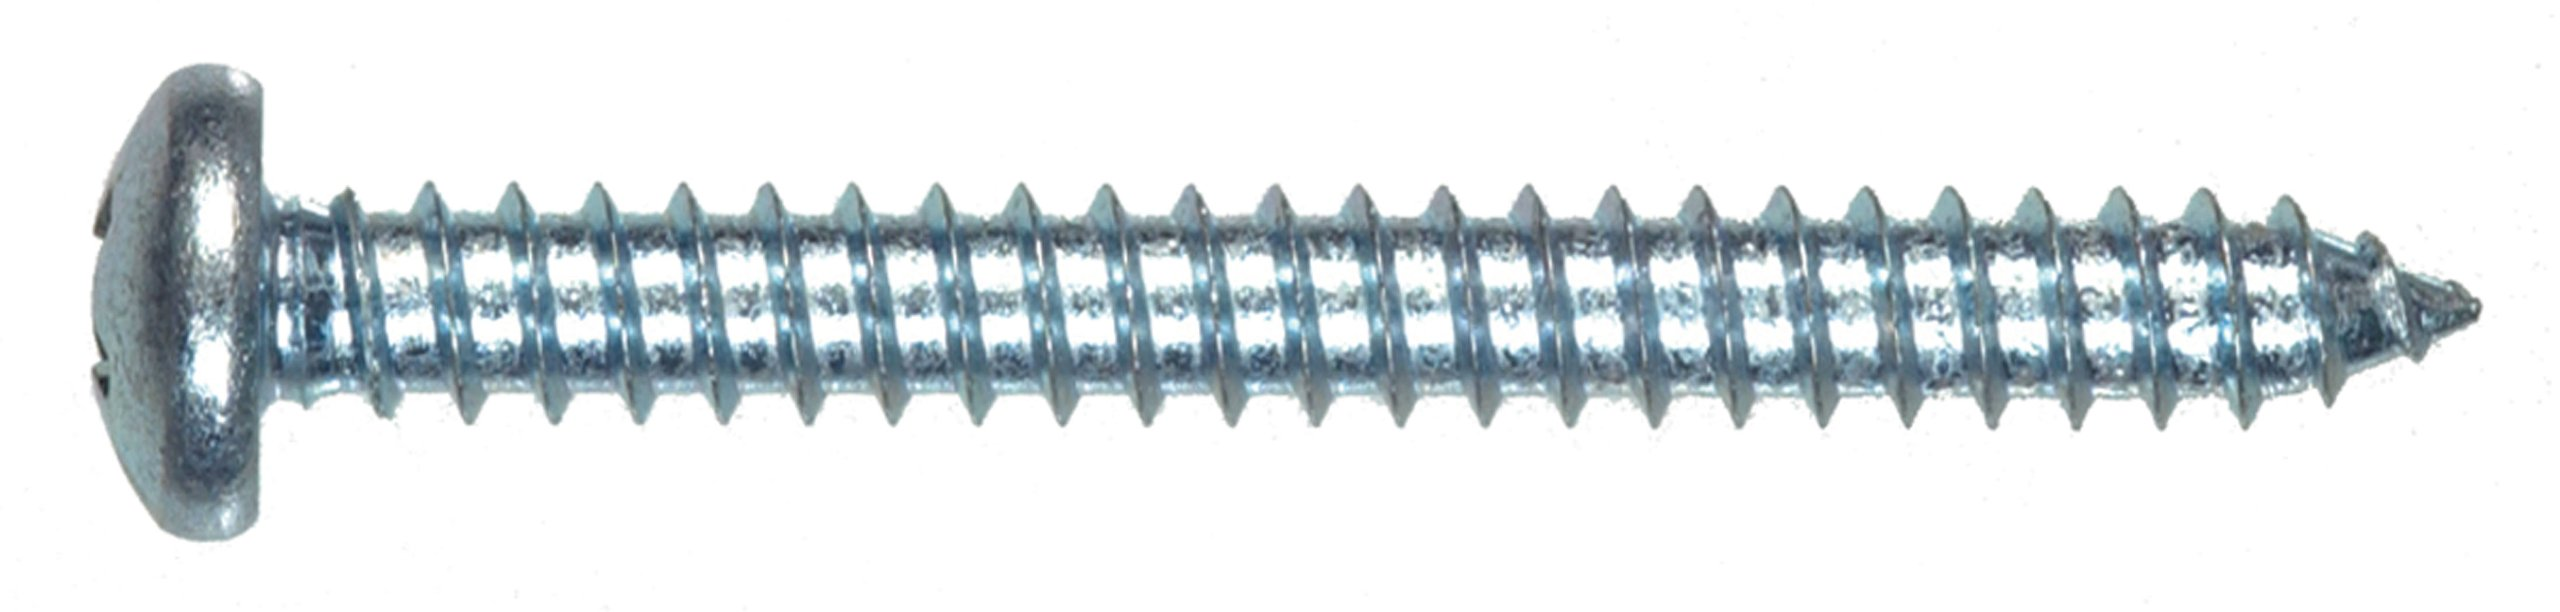 The Hillman Group 80101 12-Inch x 2-Inch Pan Head Phillips Sheet Metal Screw, 100-Pack